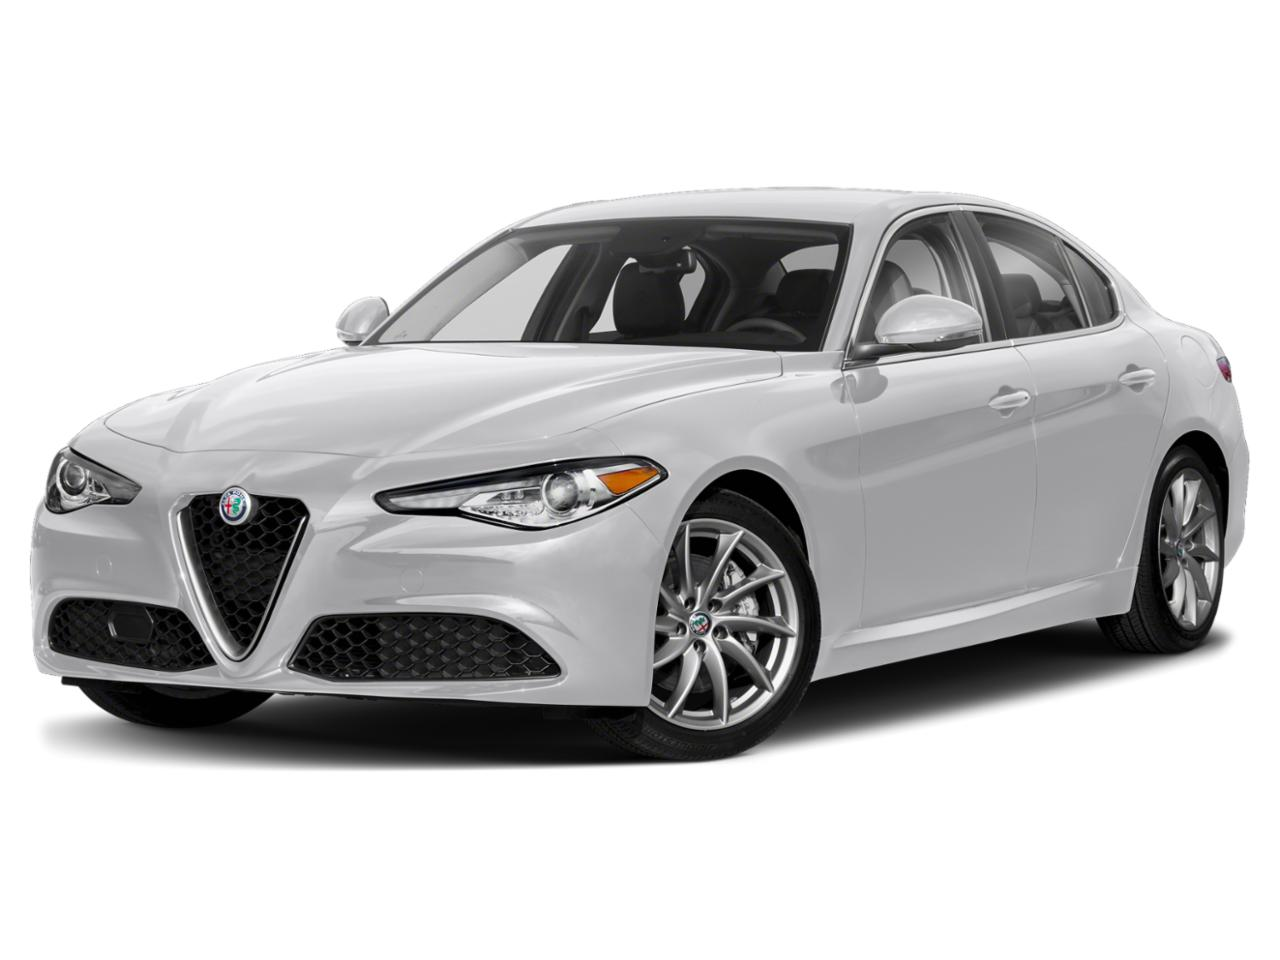 2018 Alfa Romeo Giulia Vehicle Photo in Ennis, TX 75119